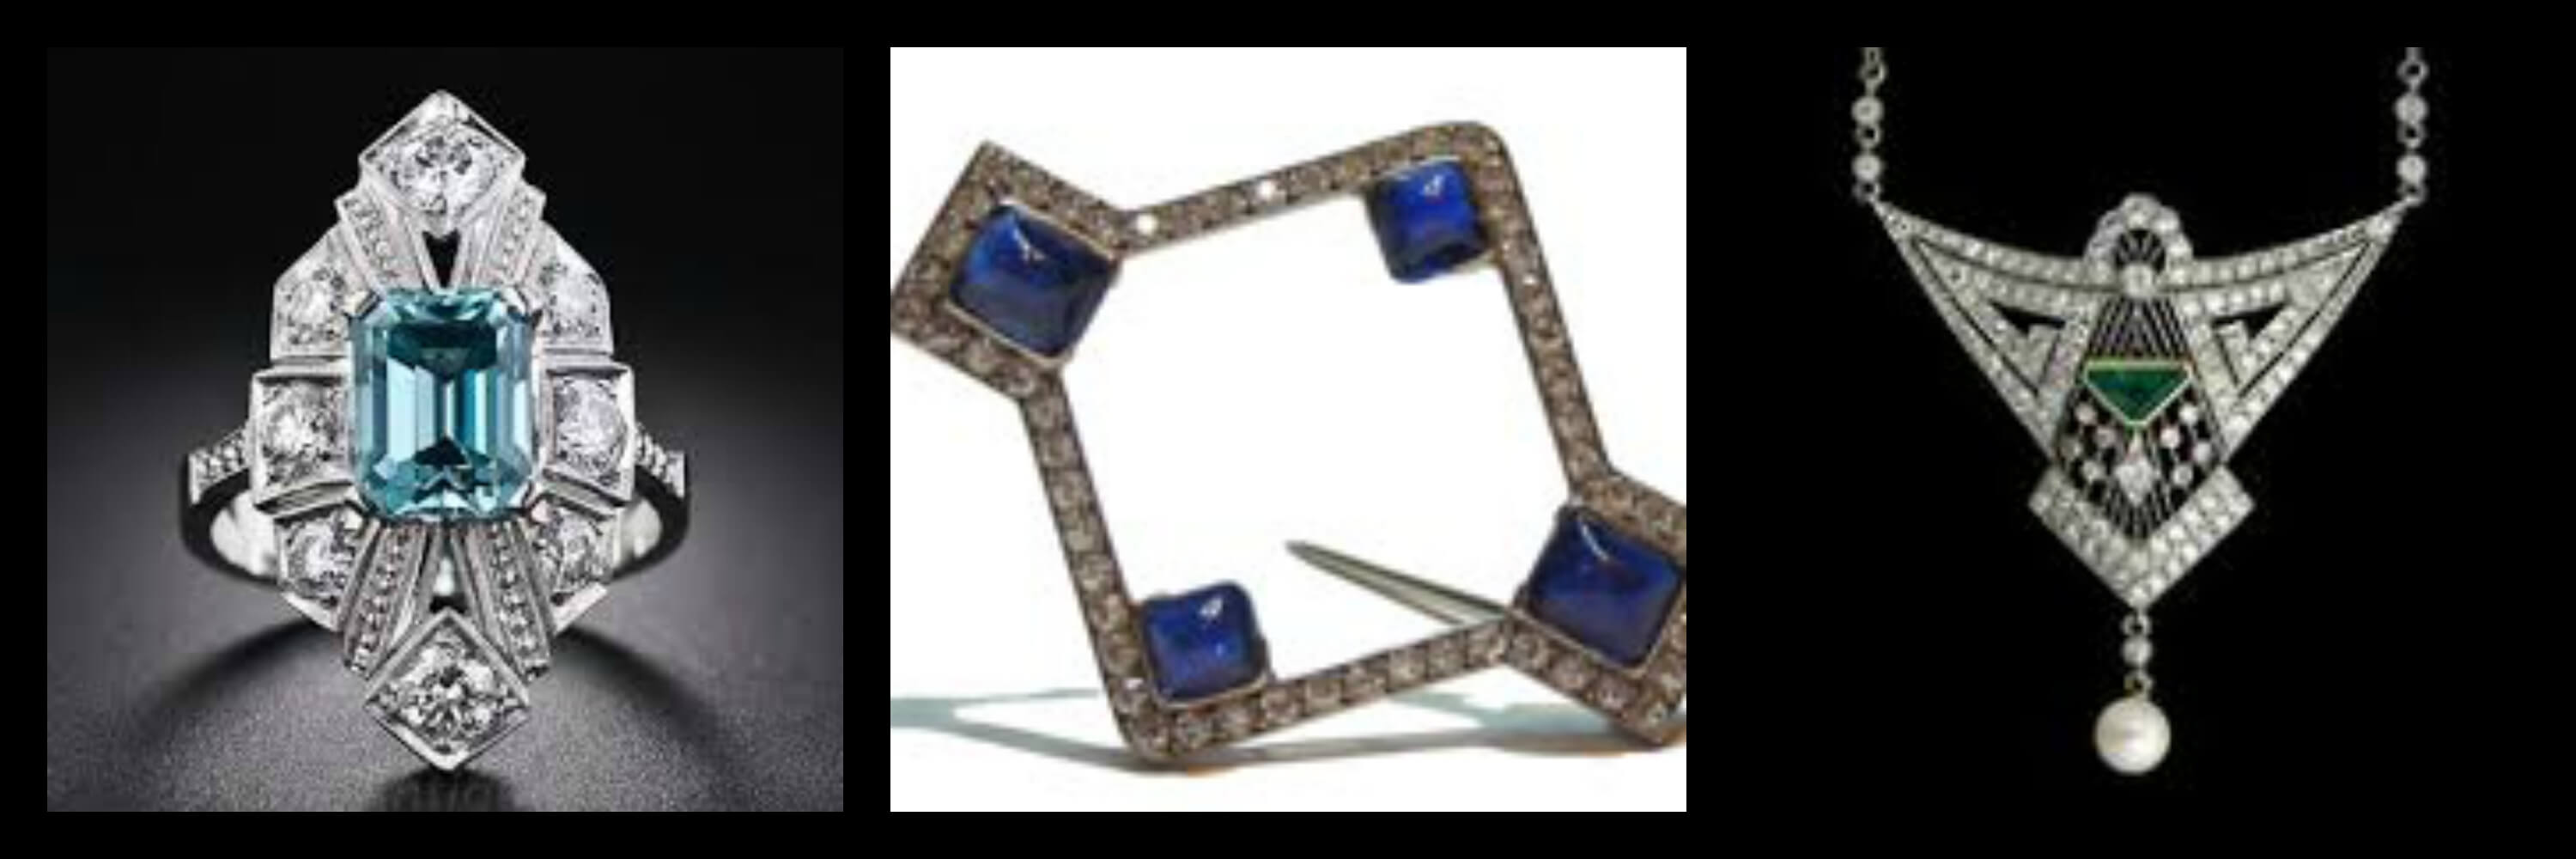 Examples of Art Deco Jewellery